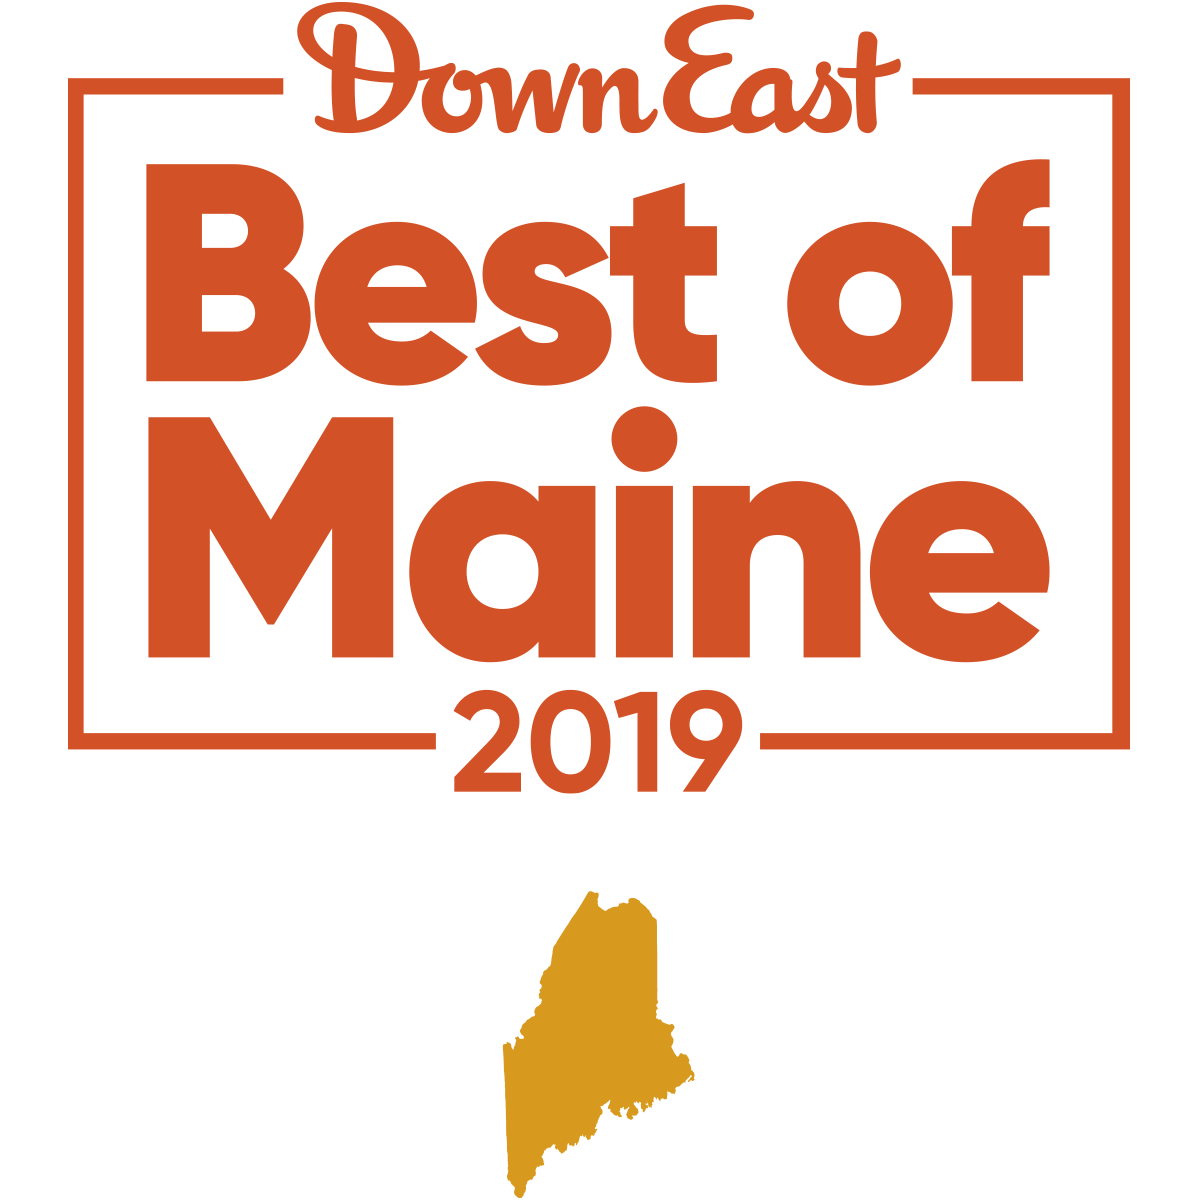 Knickerbocker Group is Down East Magazine's Best of Maine 2019